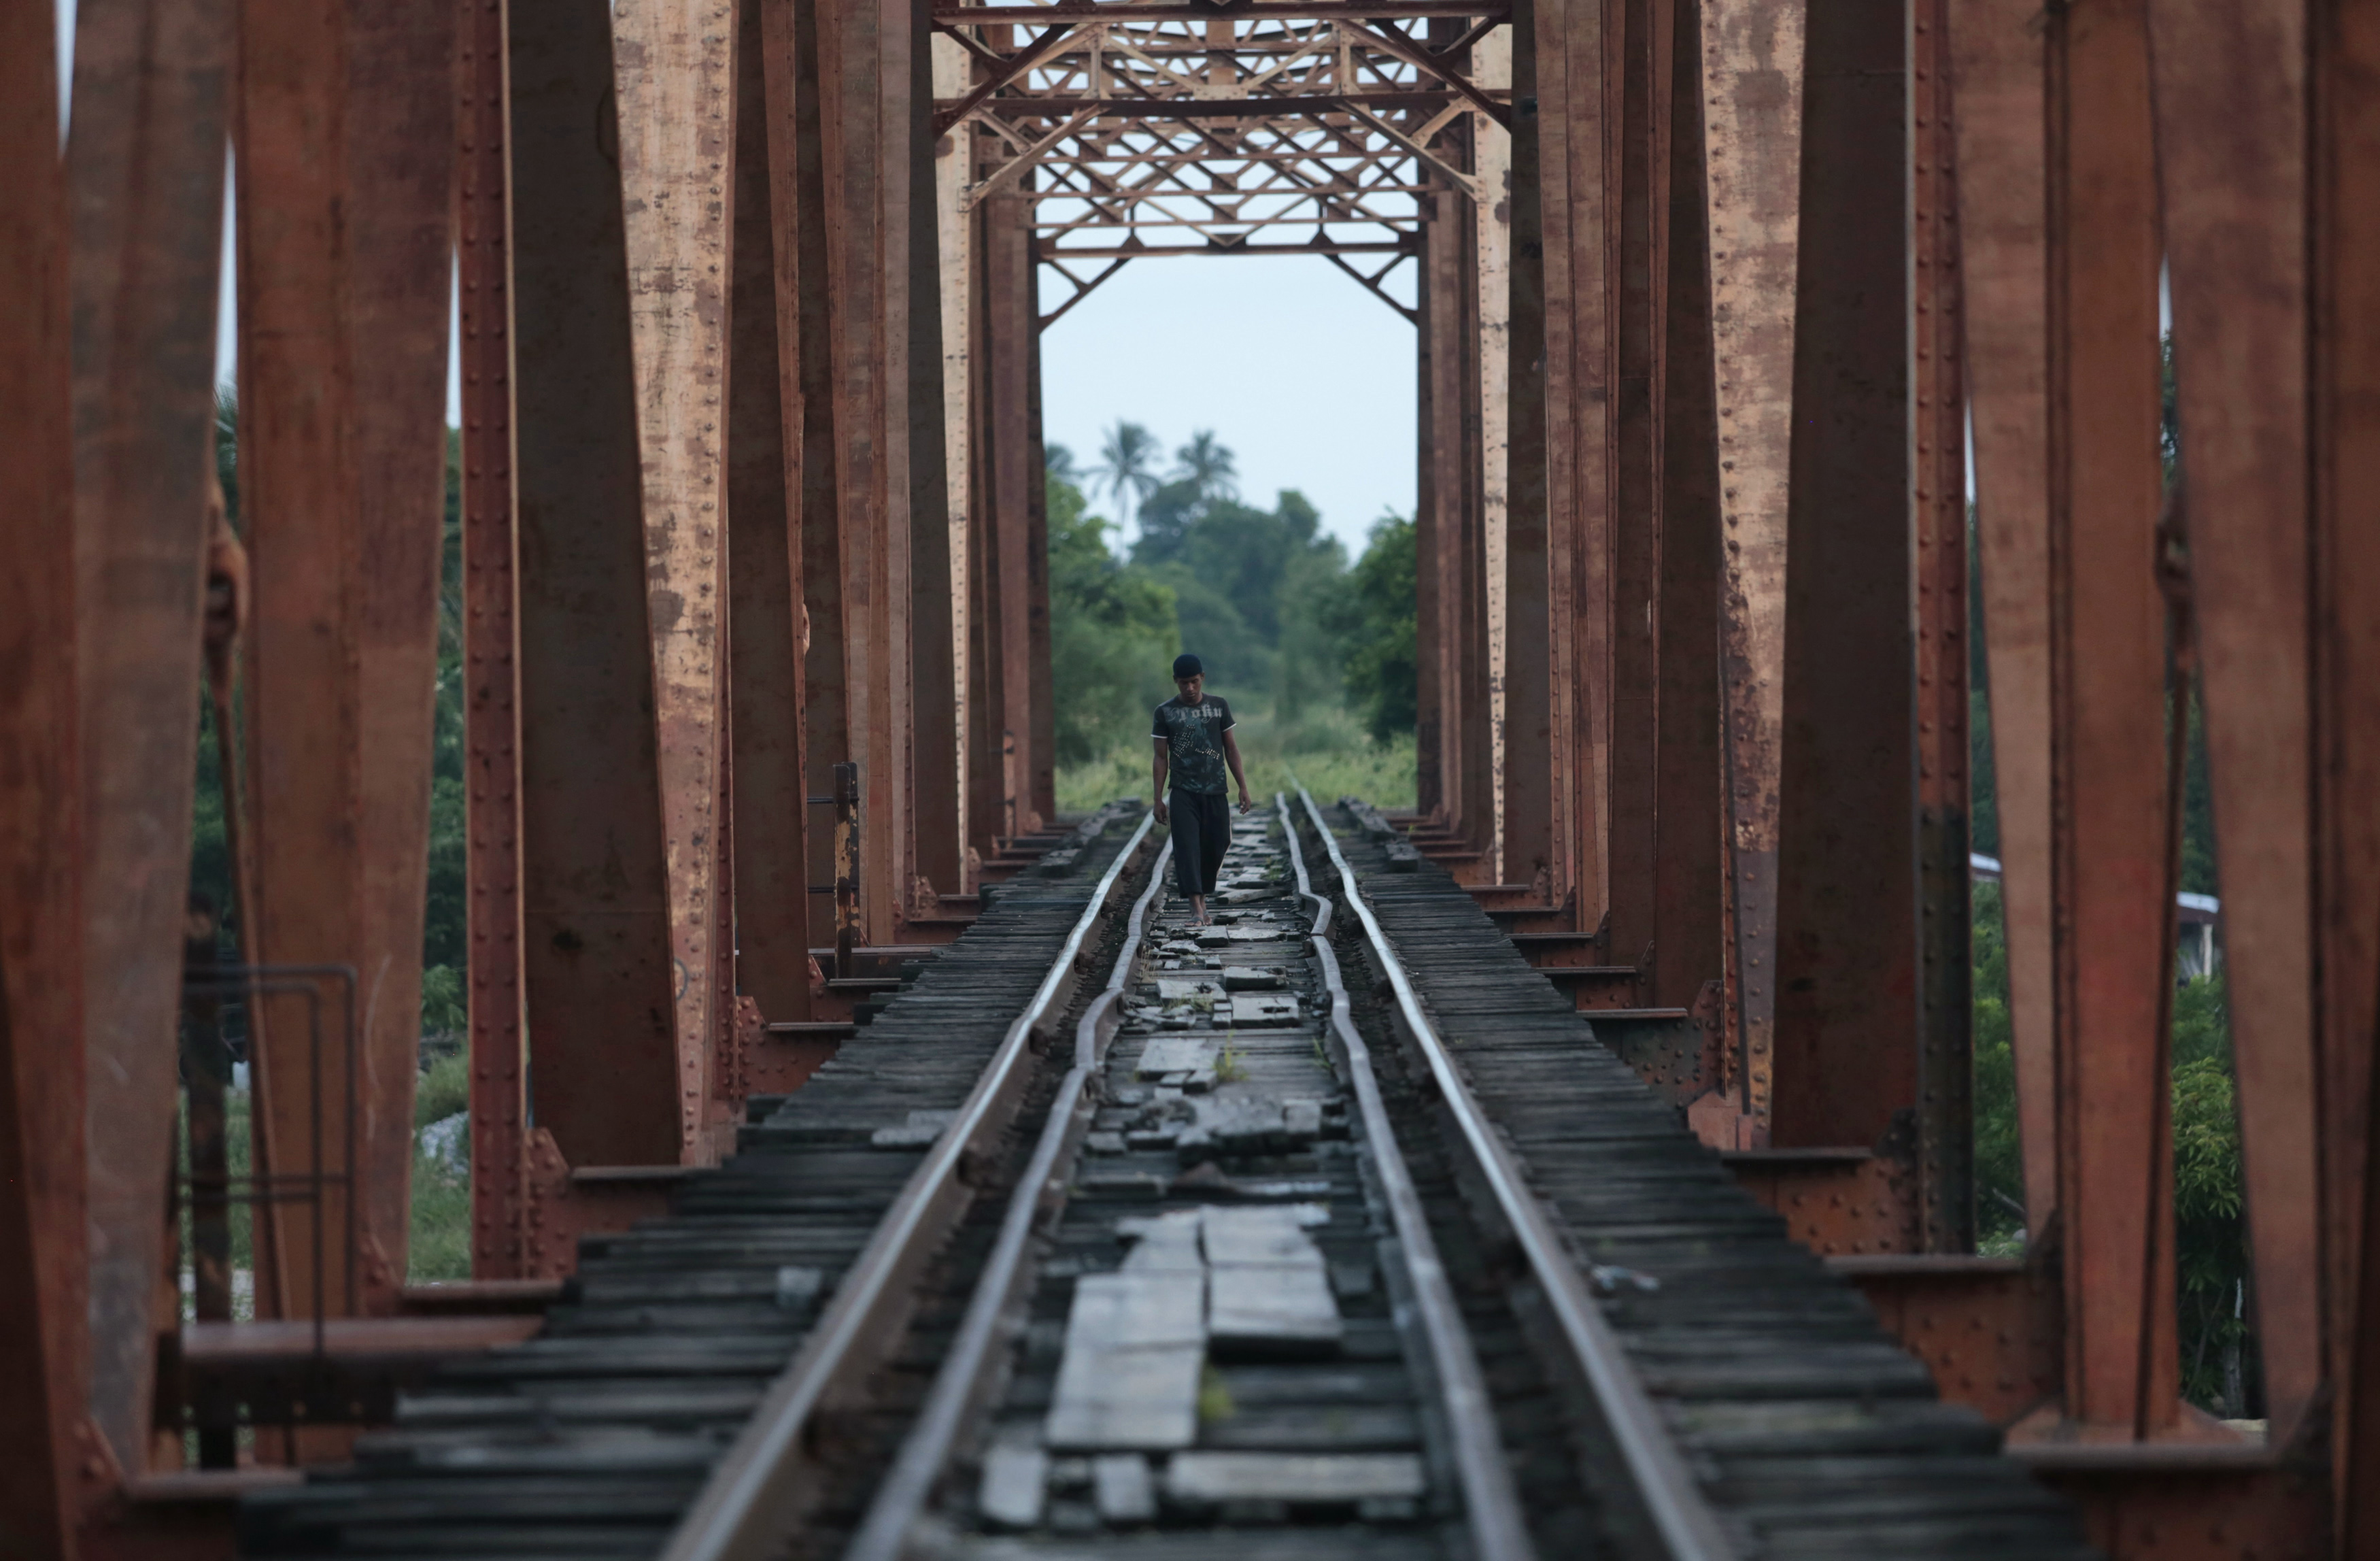 A Central American migrant walks on the train tracks in Mexico en route to the US border.